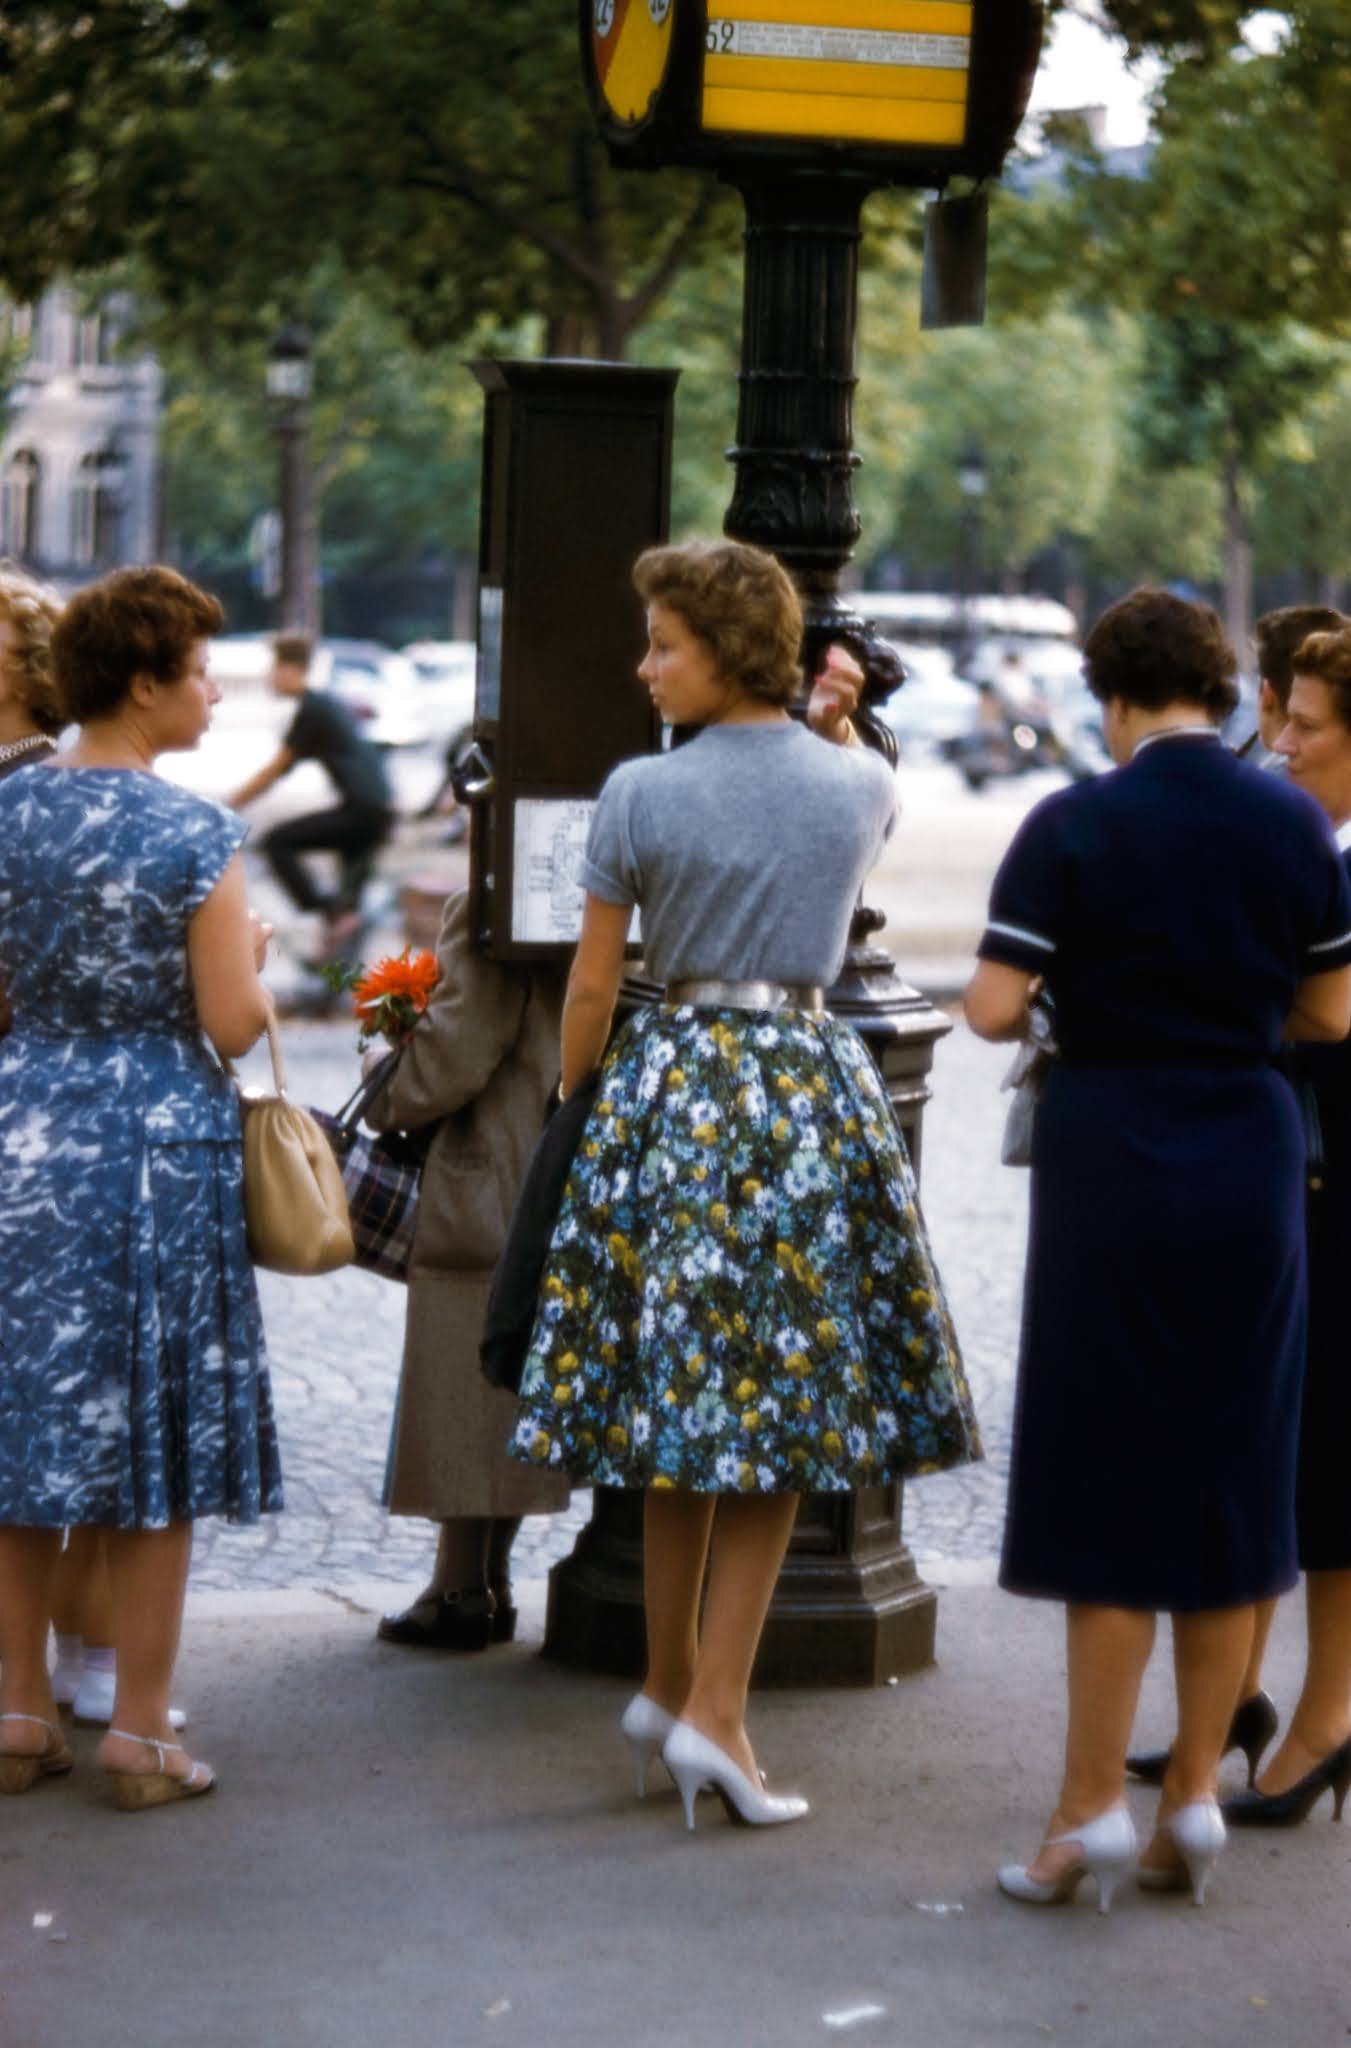 Notable Fashions over from the 1950s to the Present Day